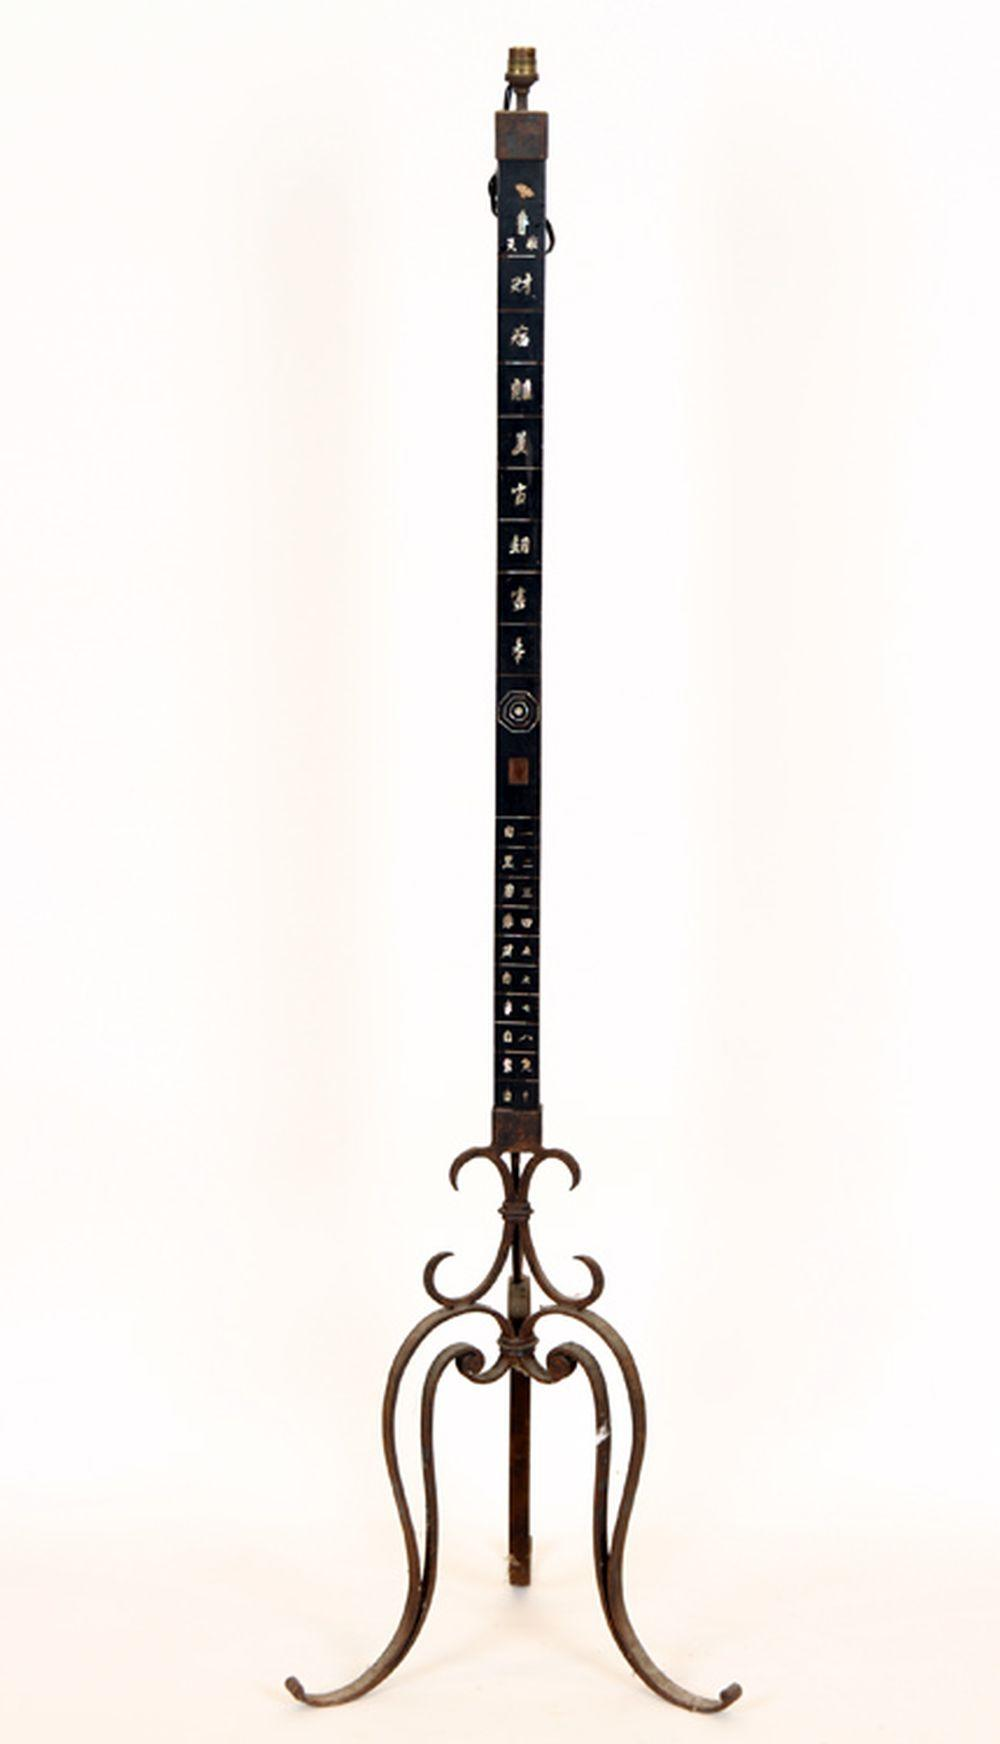 IRON FLOOR LAMP CHINESE MOTHER OF PEARL INLAID